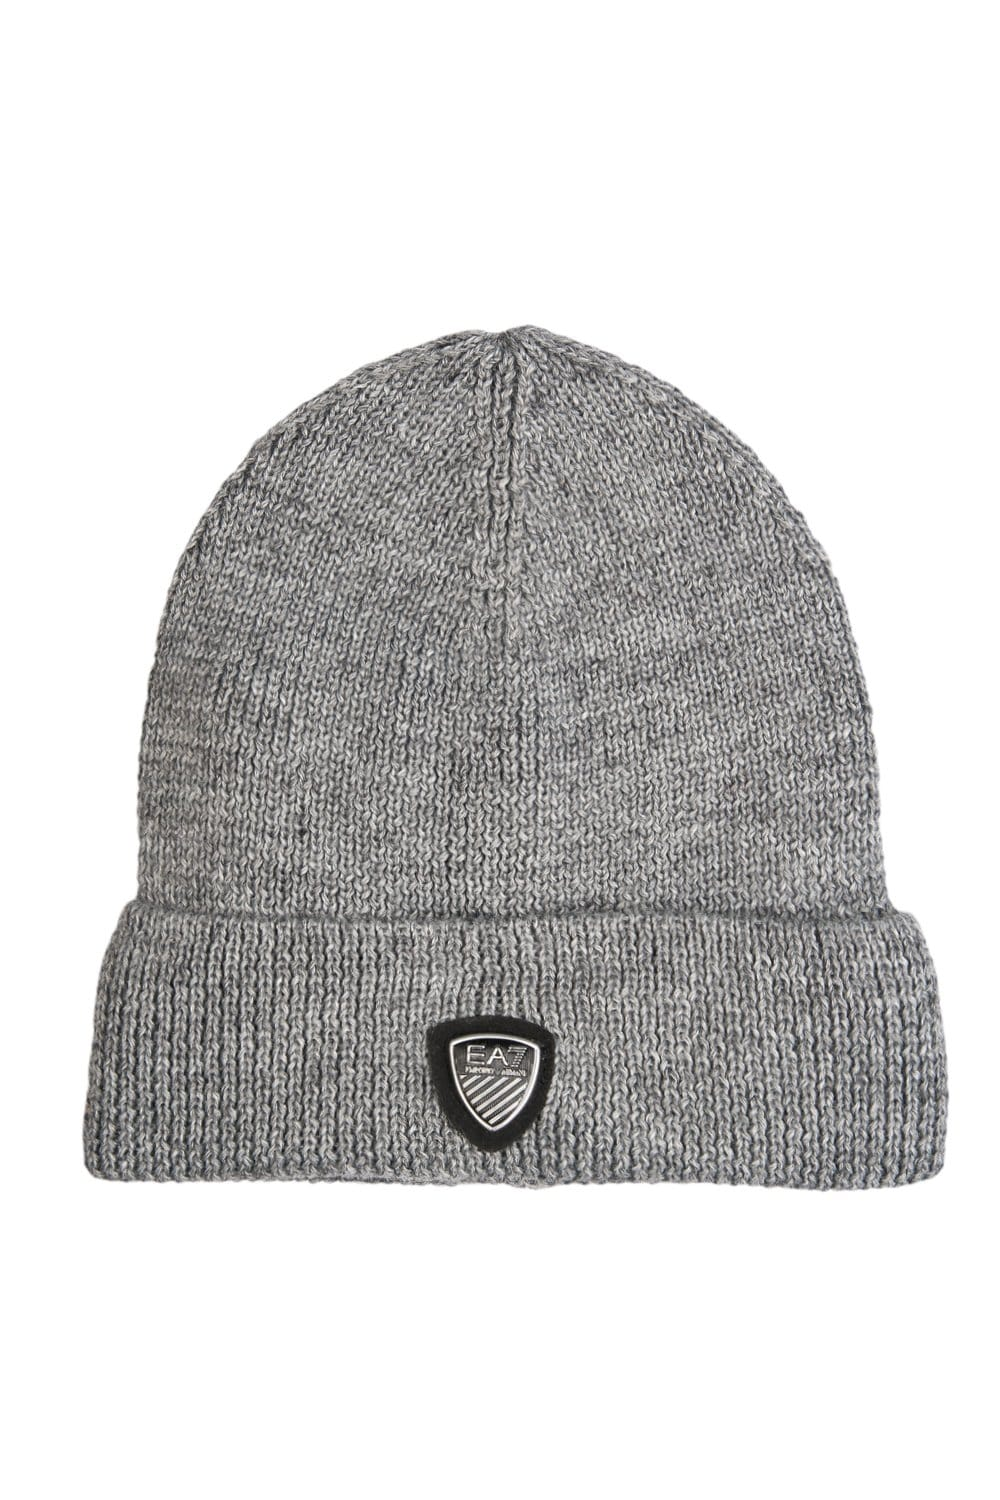 Emporio Armani EA7 Wool Beanie Hat 2755165A394 - Accessories from ... 461fb5c69d4